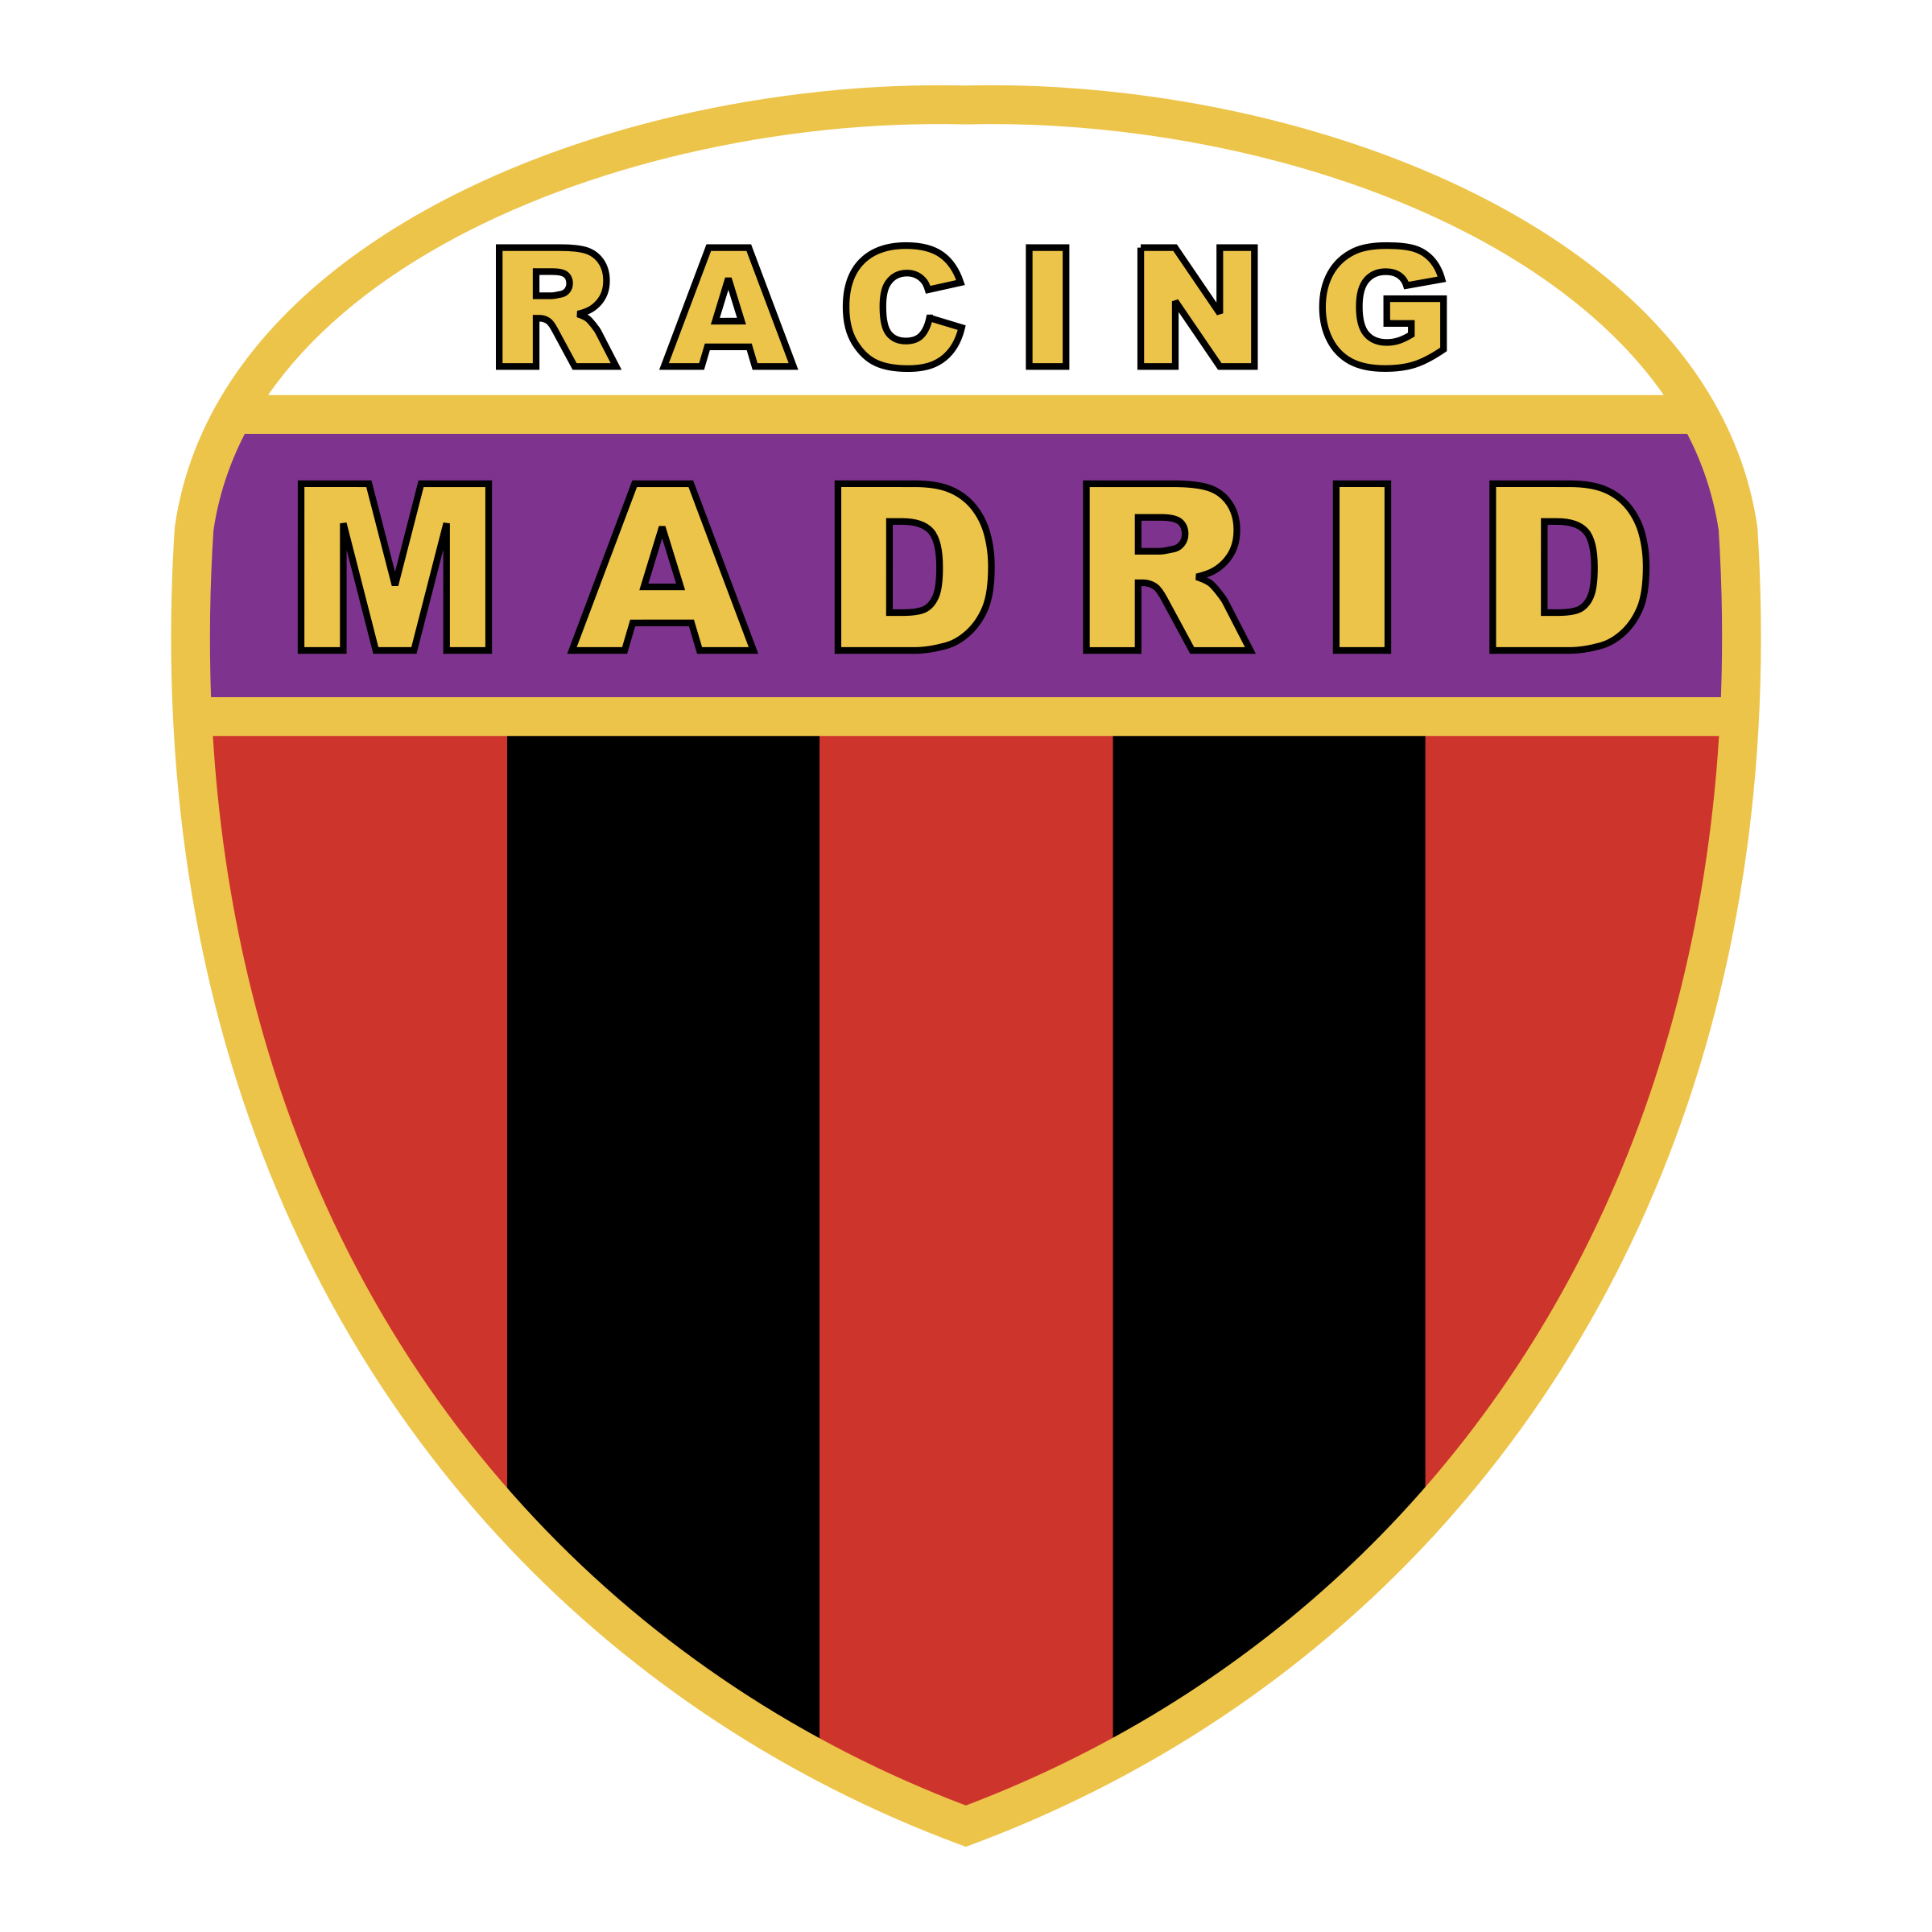 jpg royalty free stock De madrid logo png. Vector crest racing